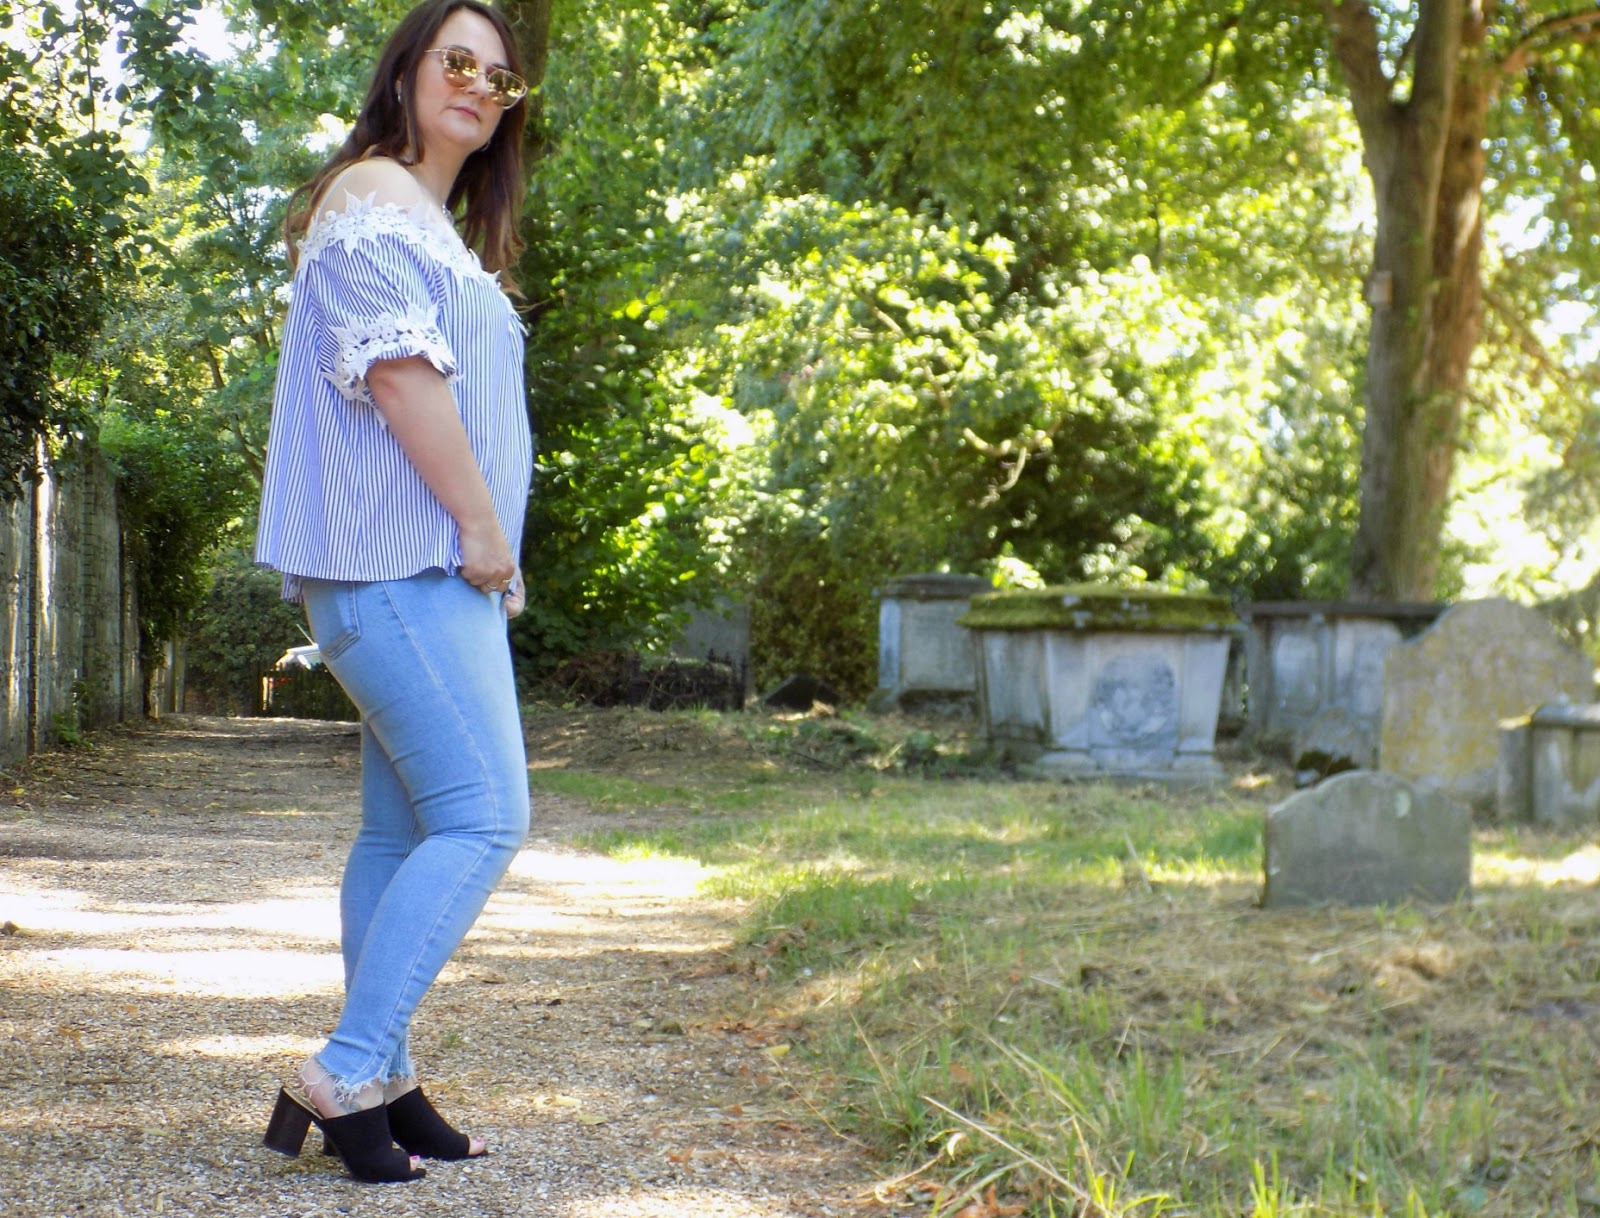 Newlook outfit post